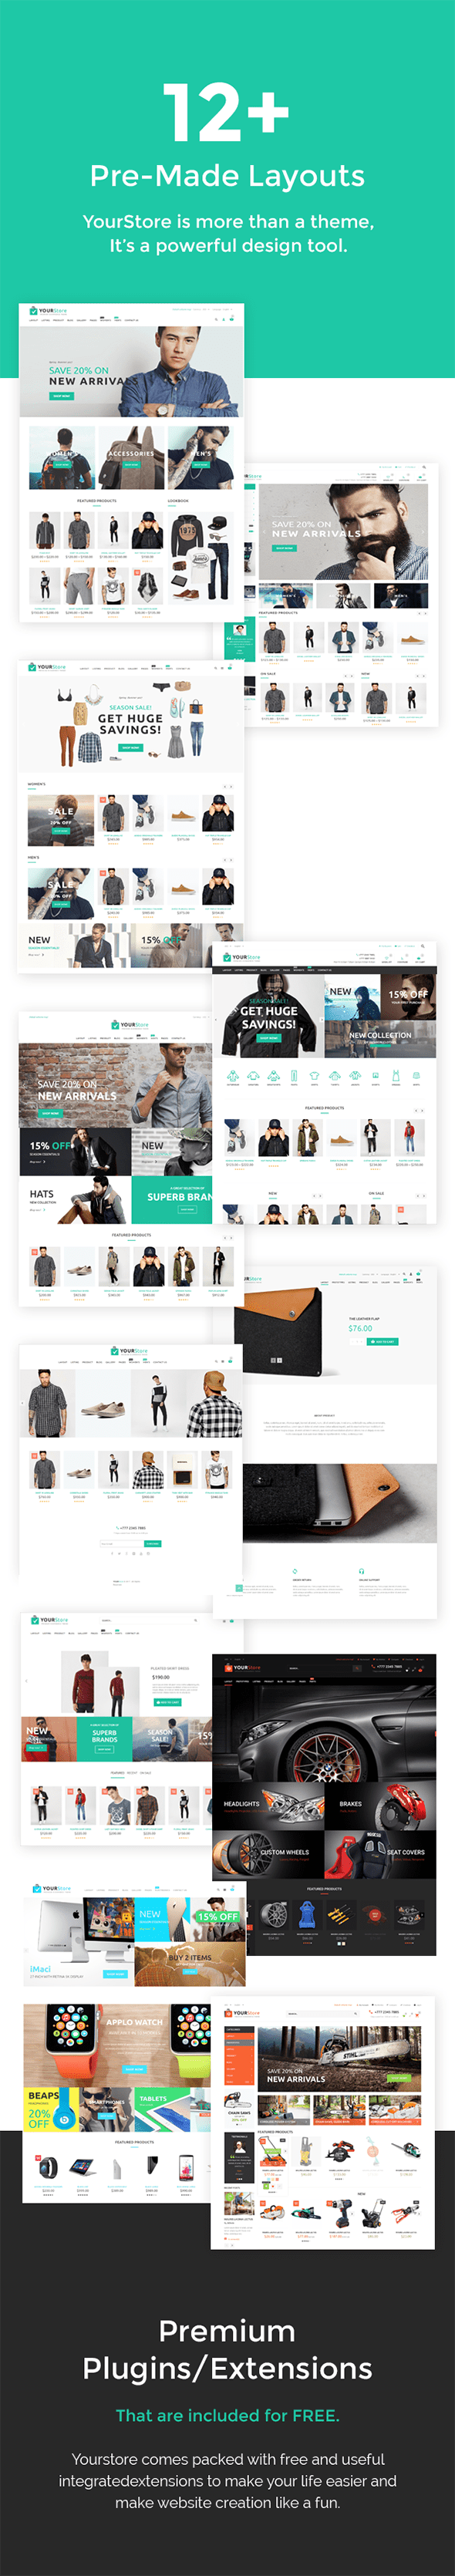 YourStore - Woocommerce theme - 3